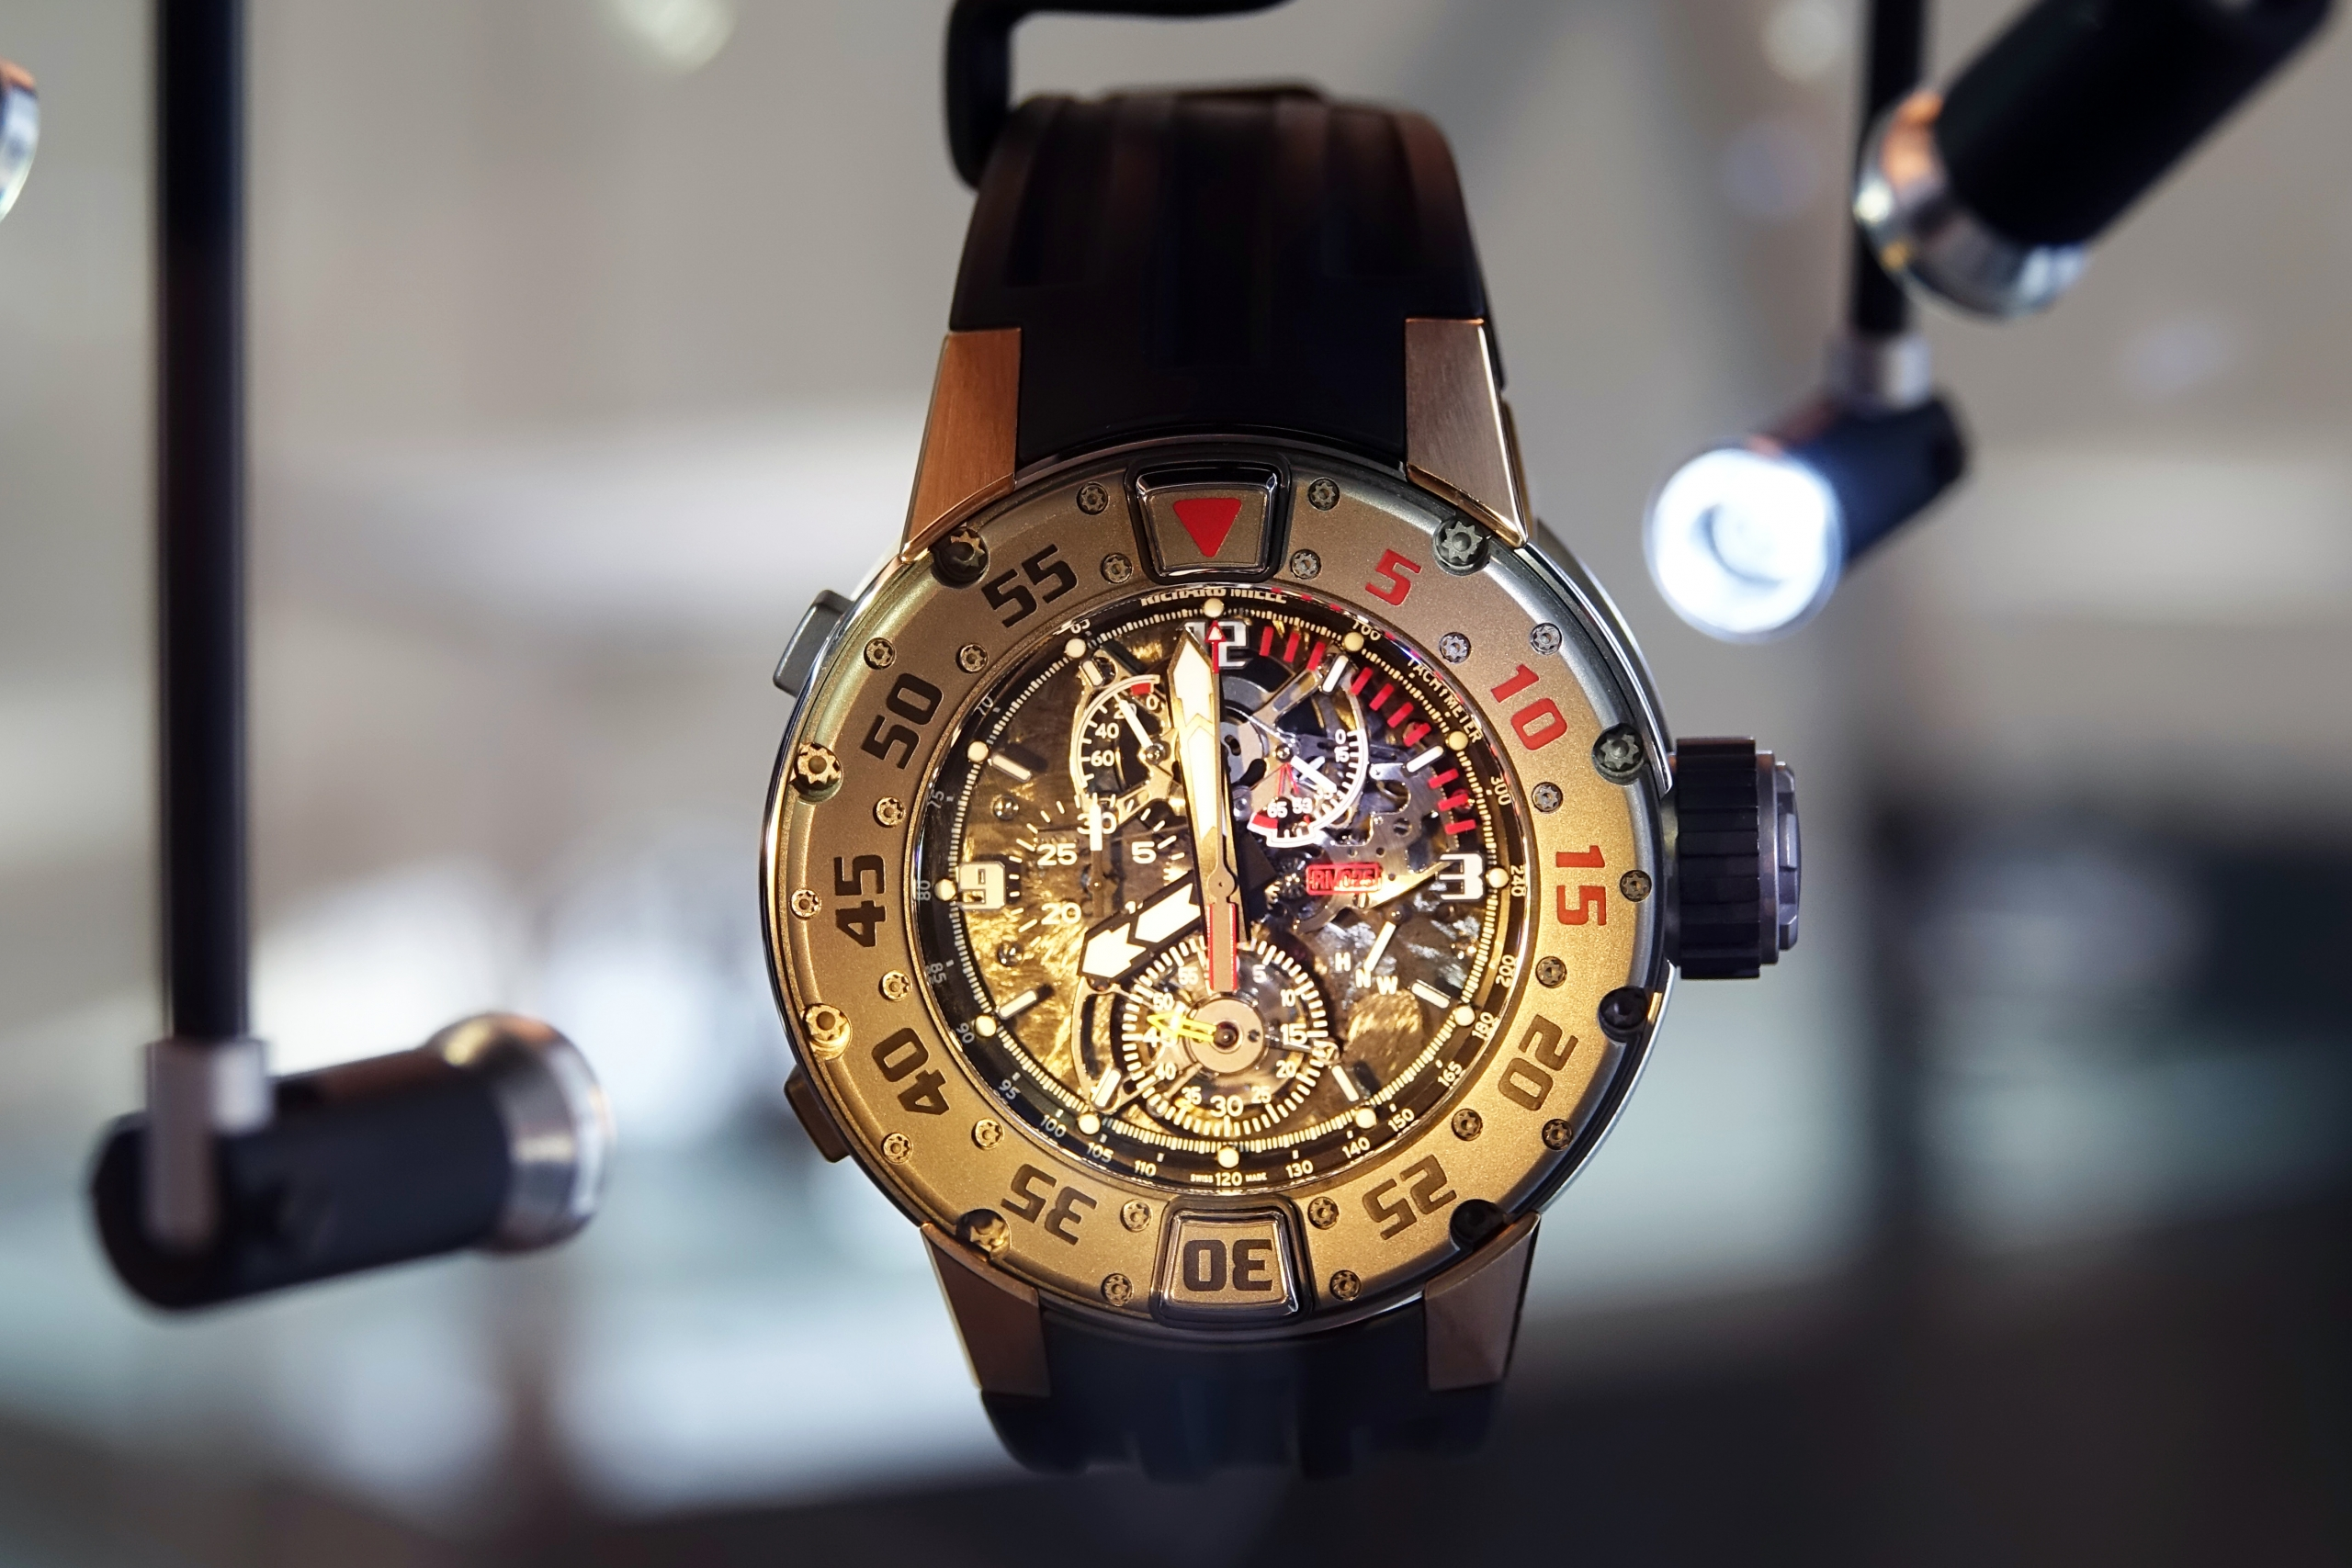 Sell Your Watch 42 Brands We Will Buy From You Right Now In 2019